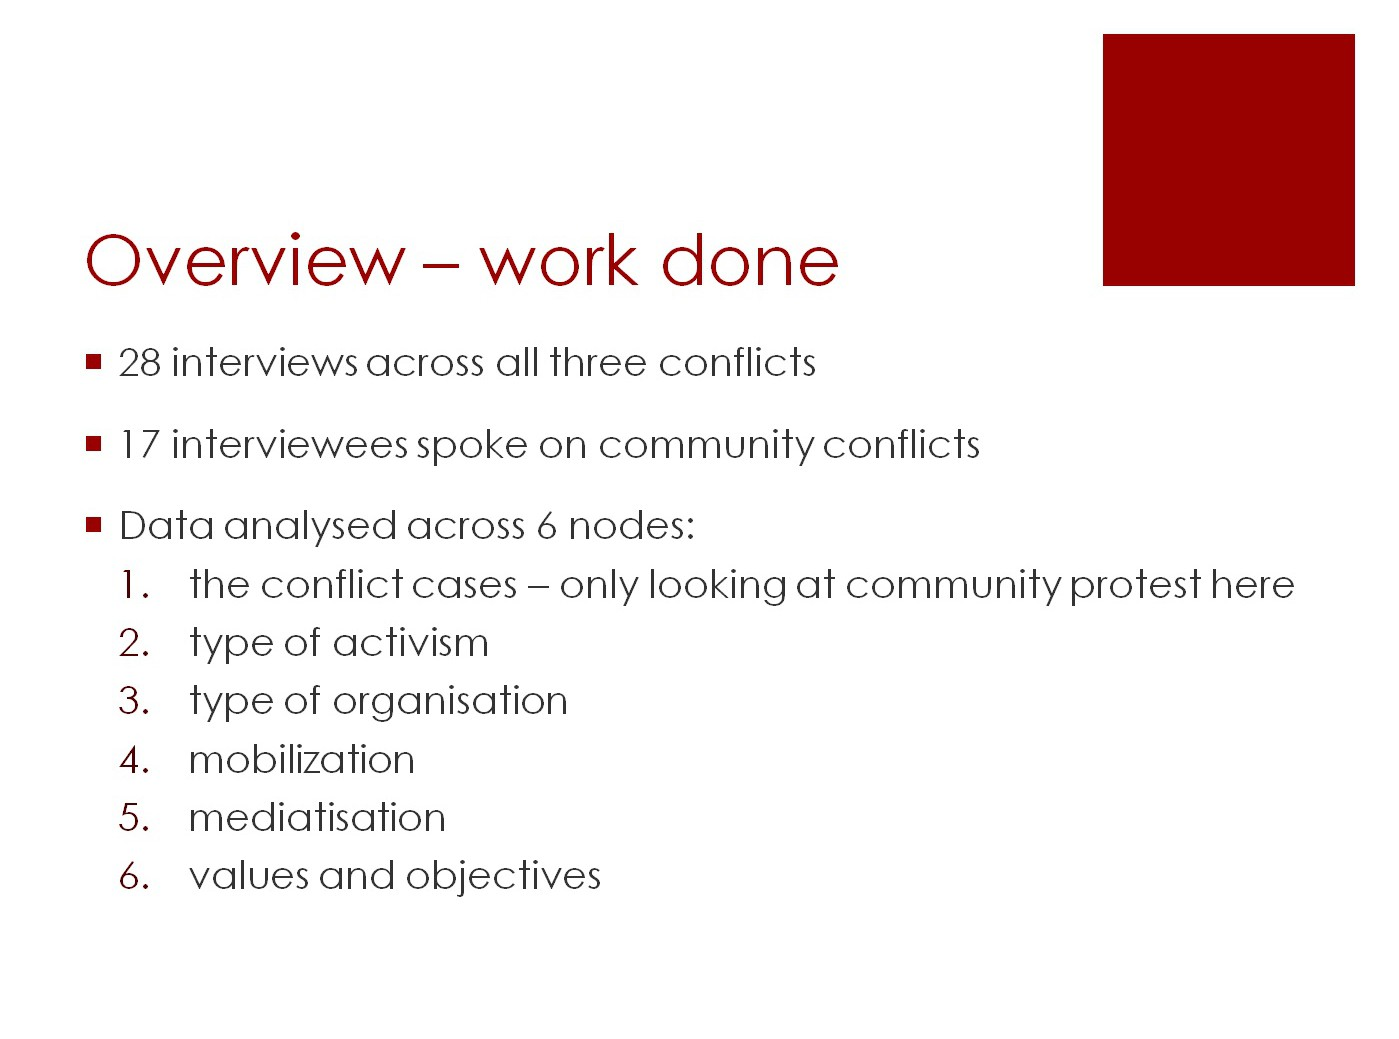 conflict in society essay